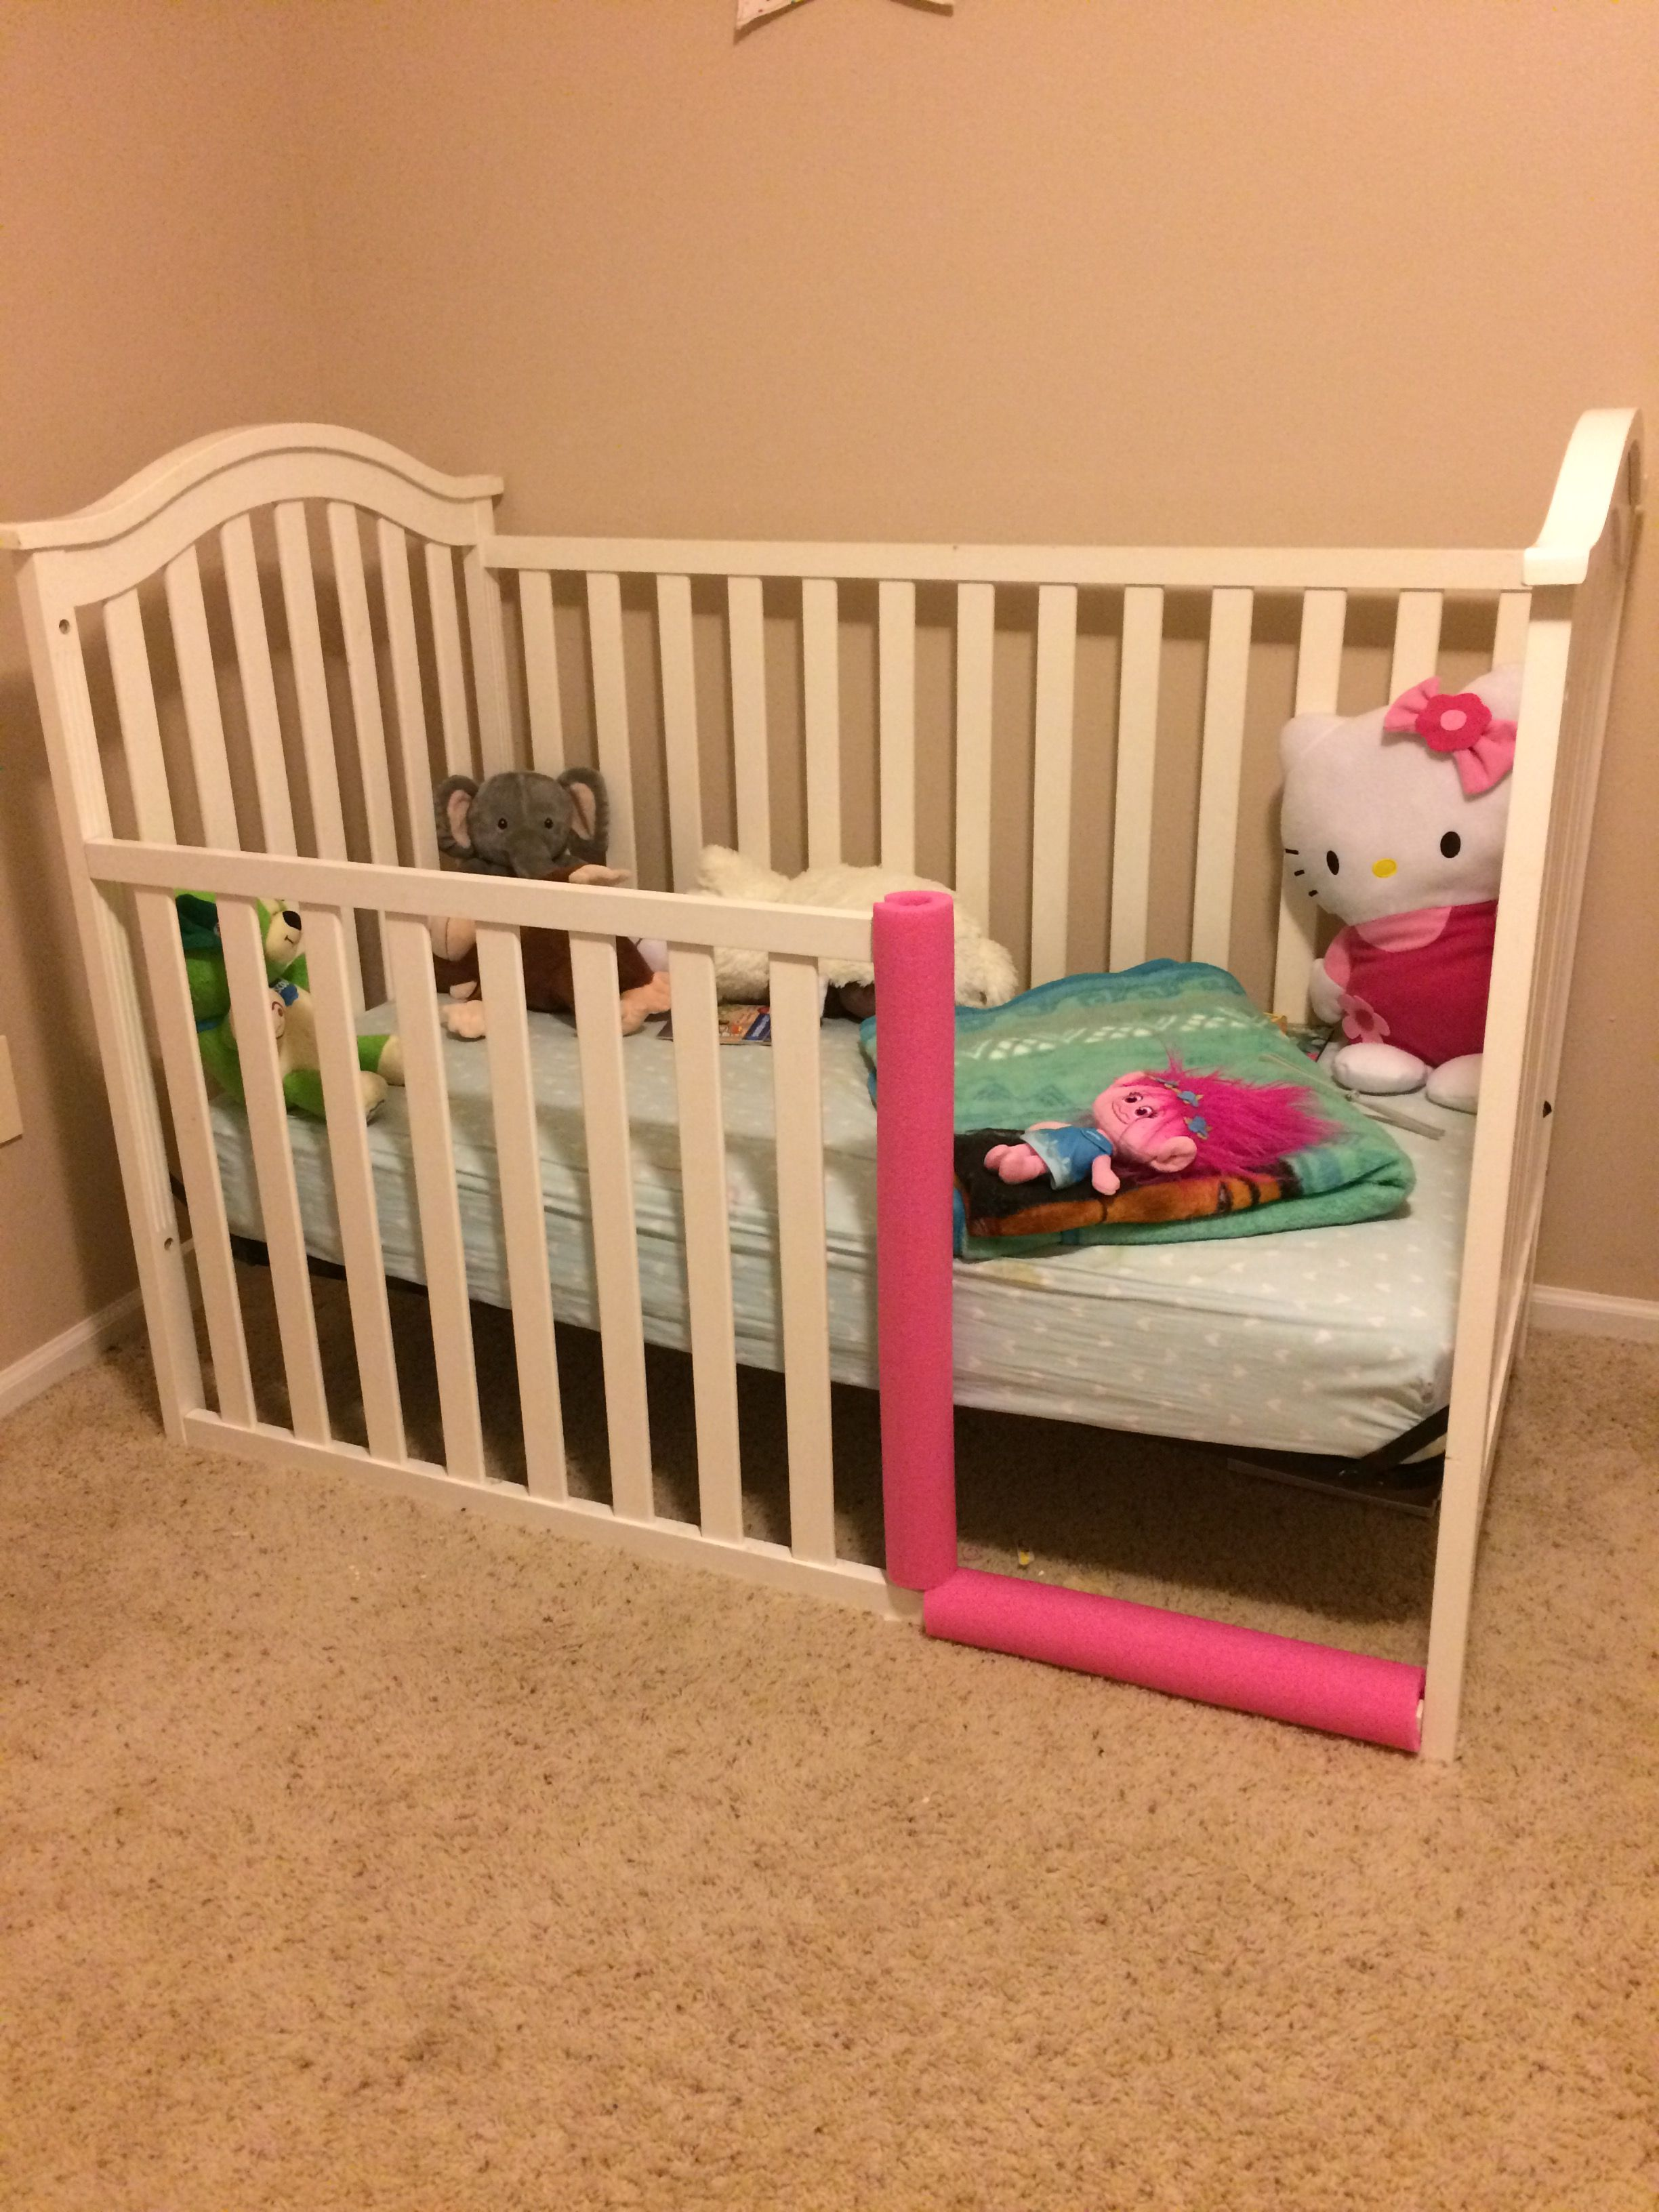 Toddler Bed From Crib Pool Noodle Repurpose For Safety Diy Toddler Bed Kids Toddler Bed Crib Toddler Bed